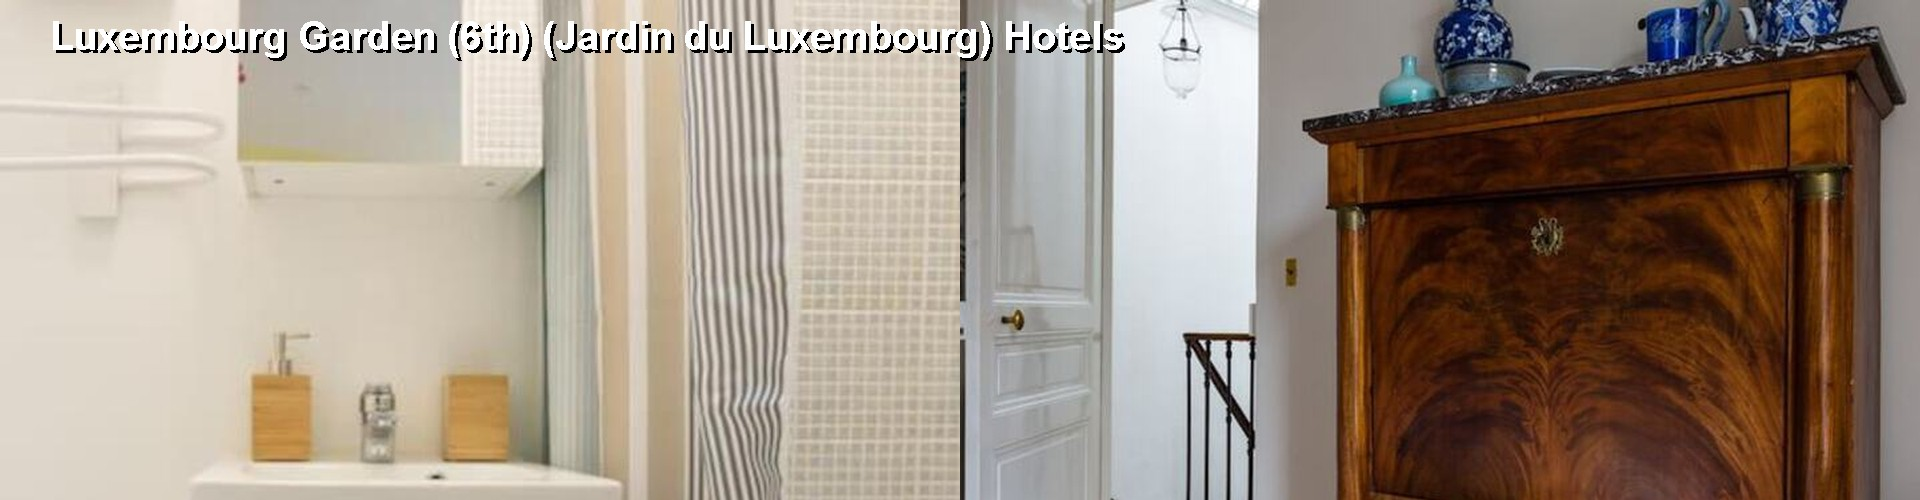 5 Best Hotels near Luxembourg Garden (6th) (Jardin du Luxembourg)